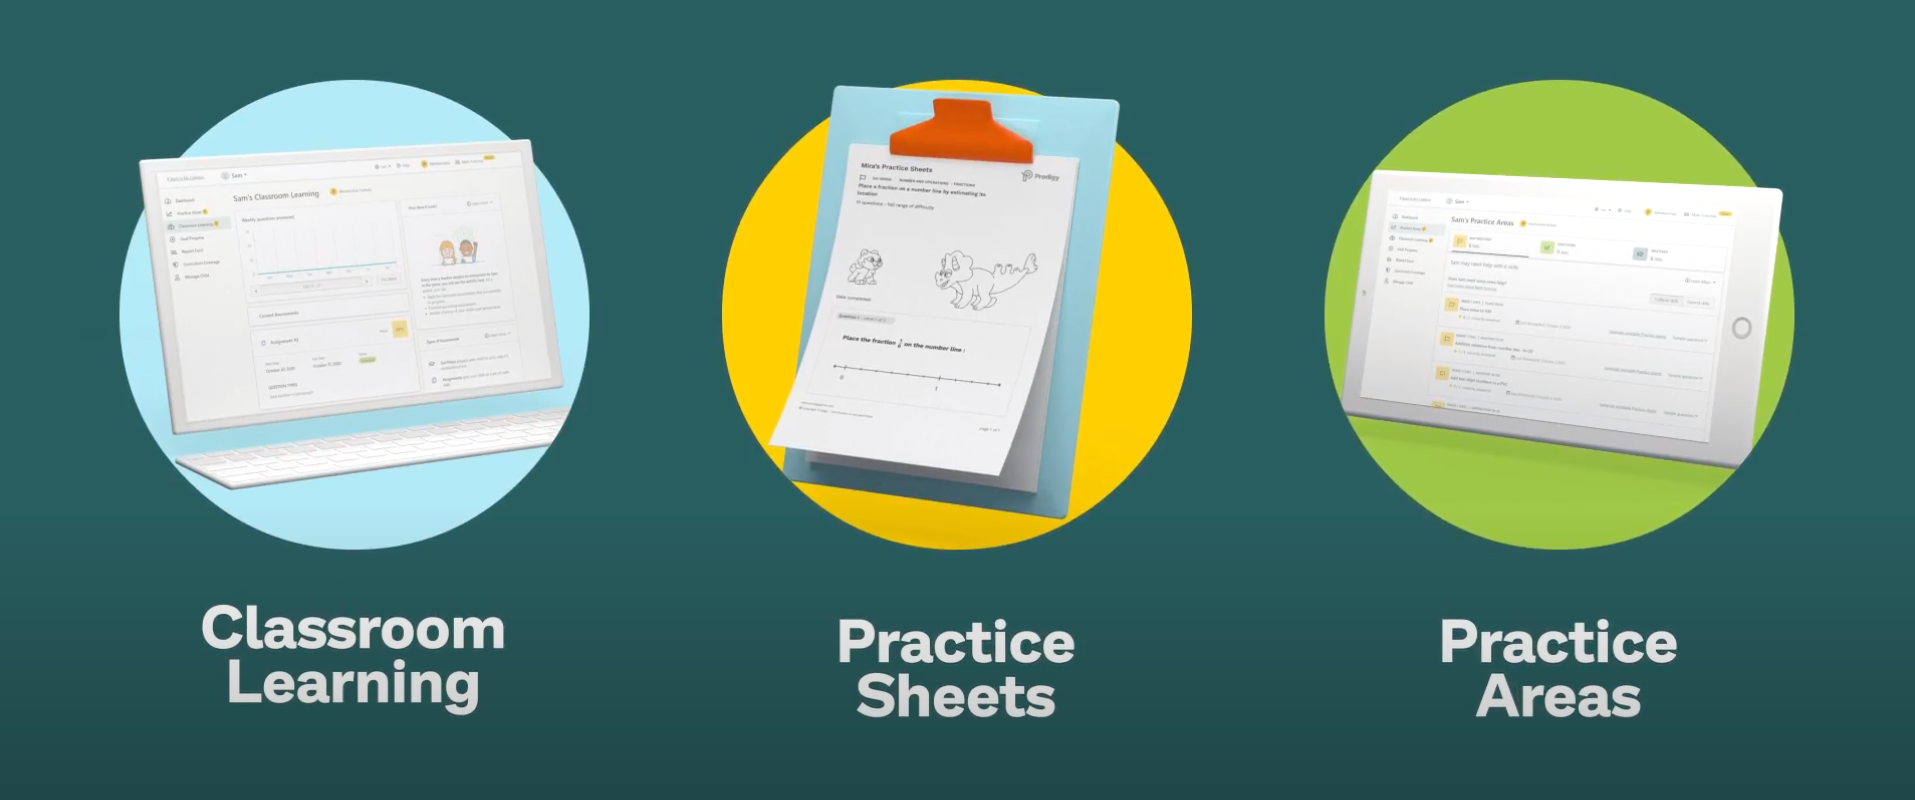 Three new parent membership prodigy features: classroom learning, practice sheets and practice areas.